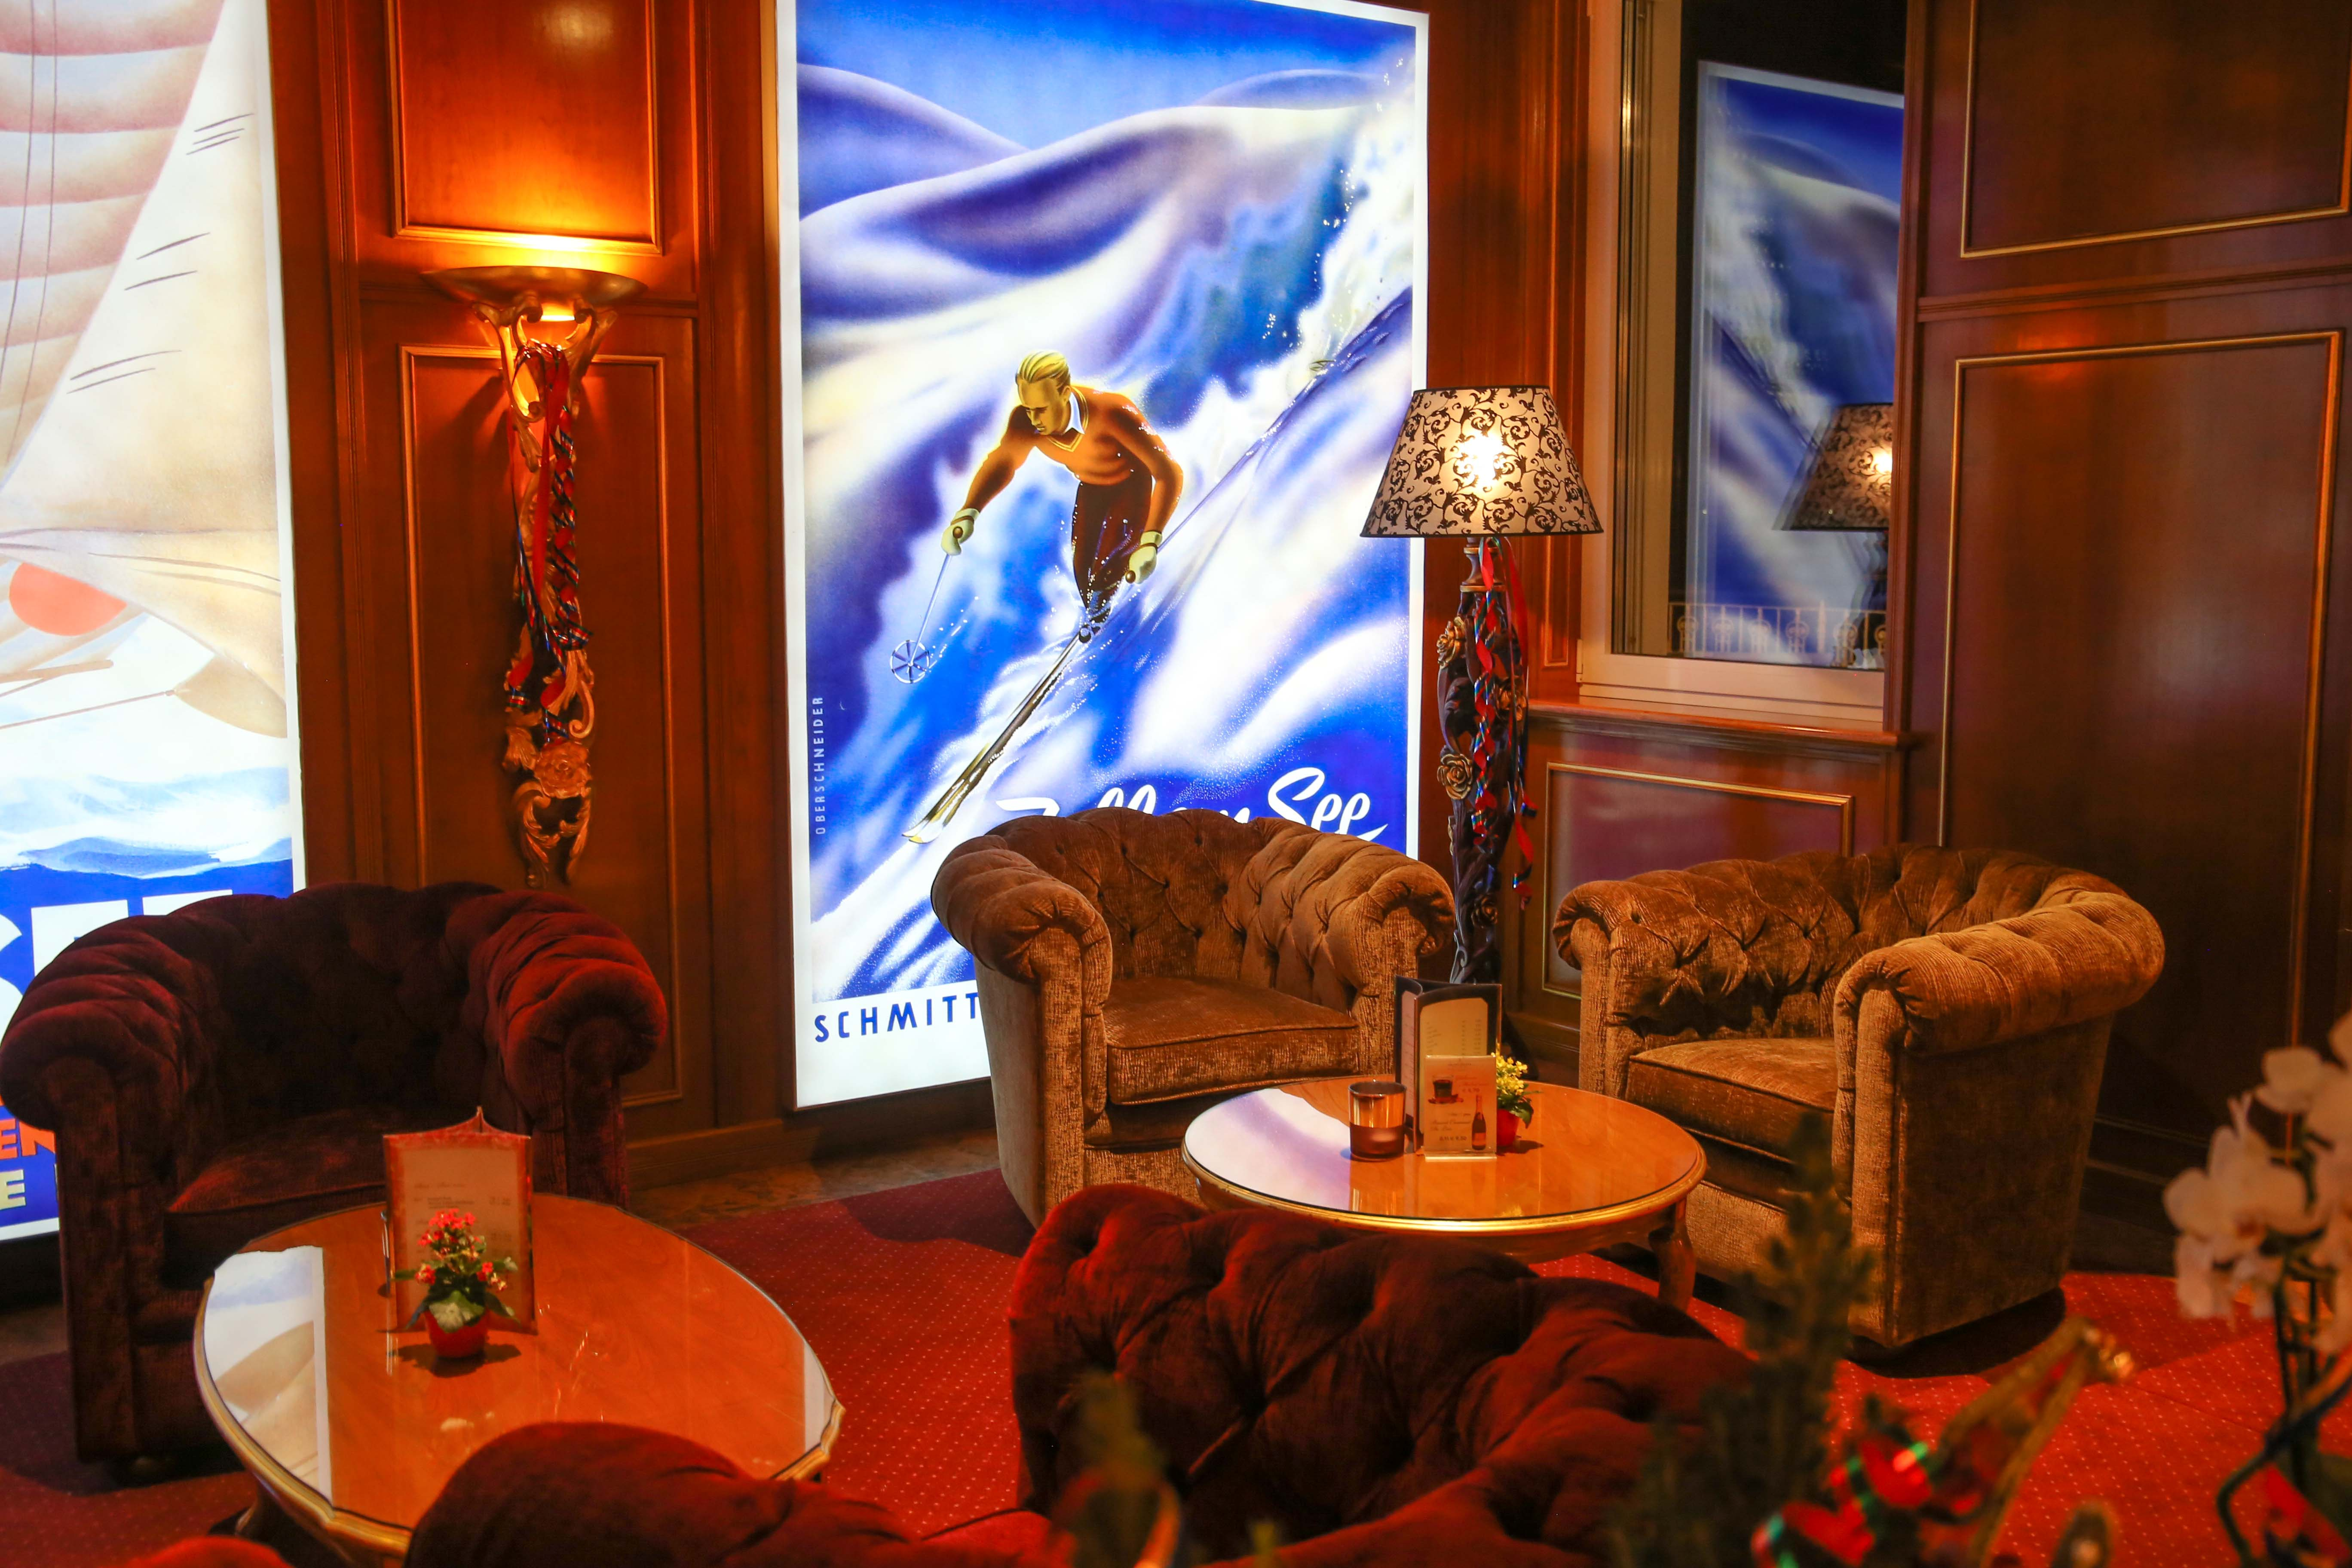 grand-hotel-zell-am-see-restaurant-bar